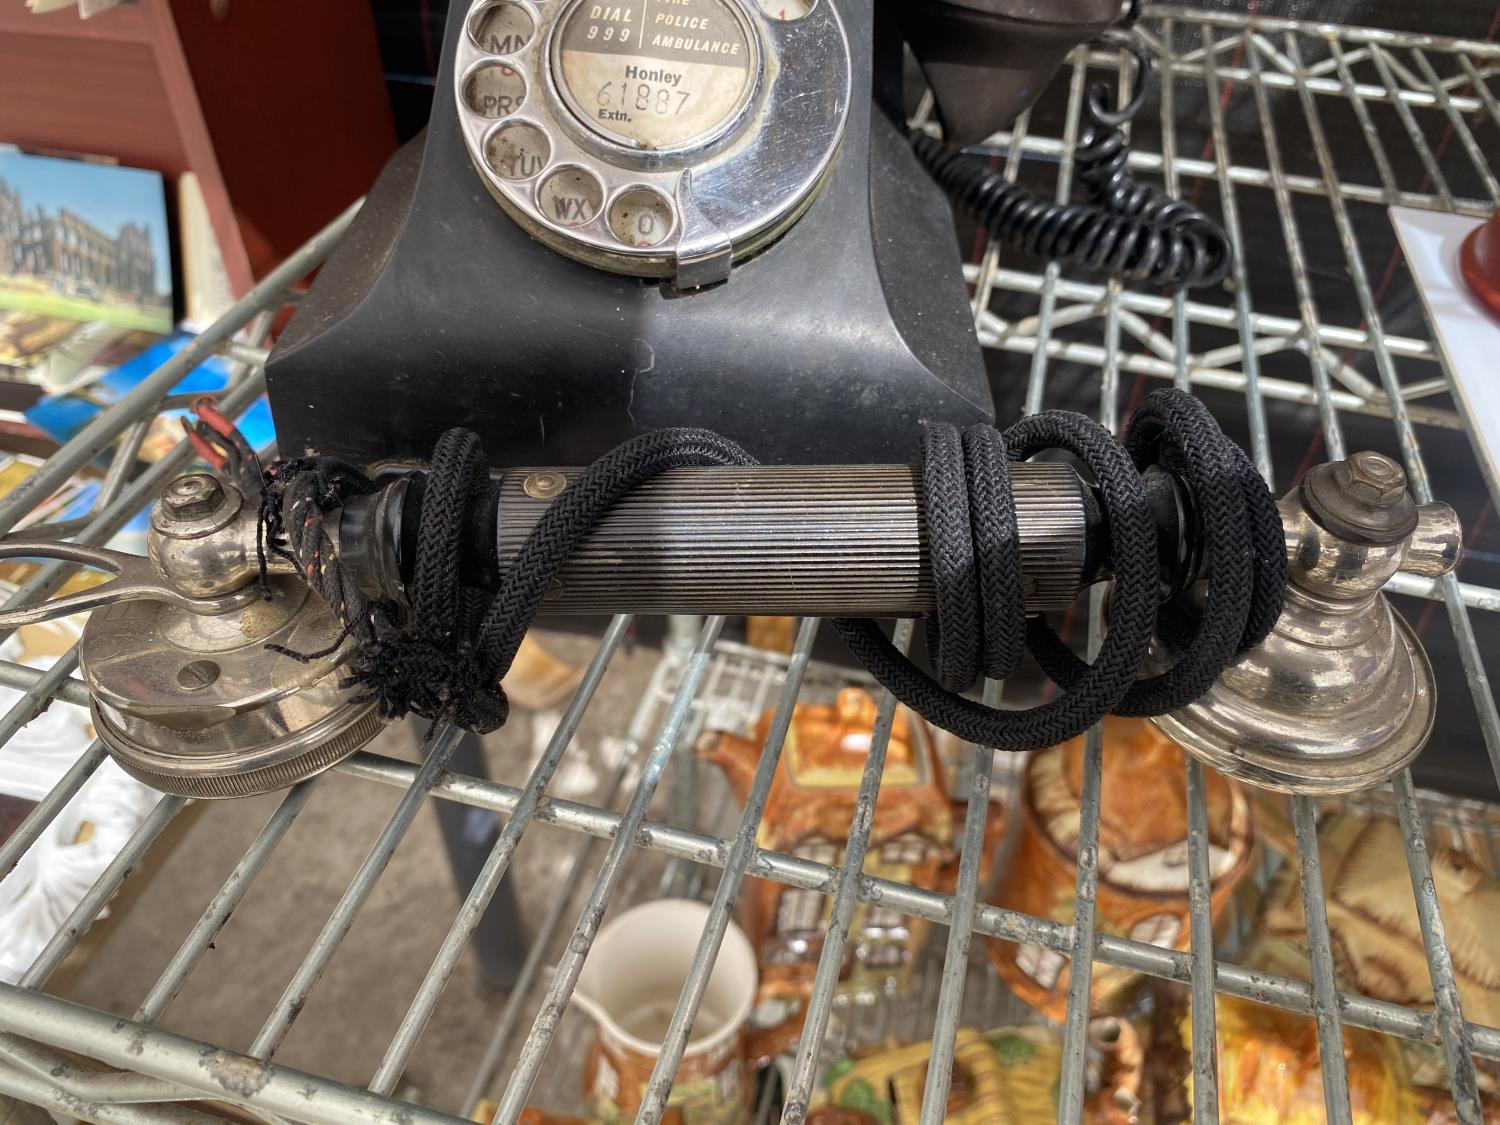 A VINTAGE TELEPHONE AND A FURTHER TELPHONE RECIEVER - Image 3 of 4